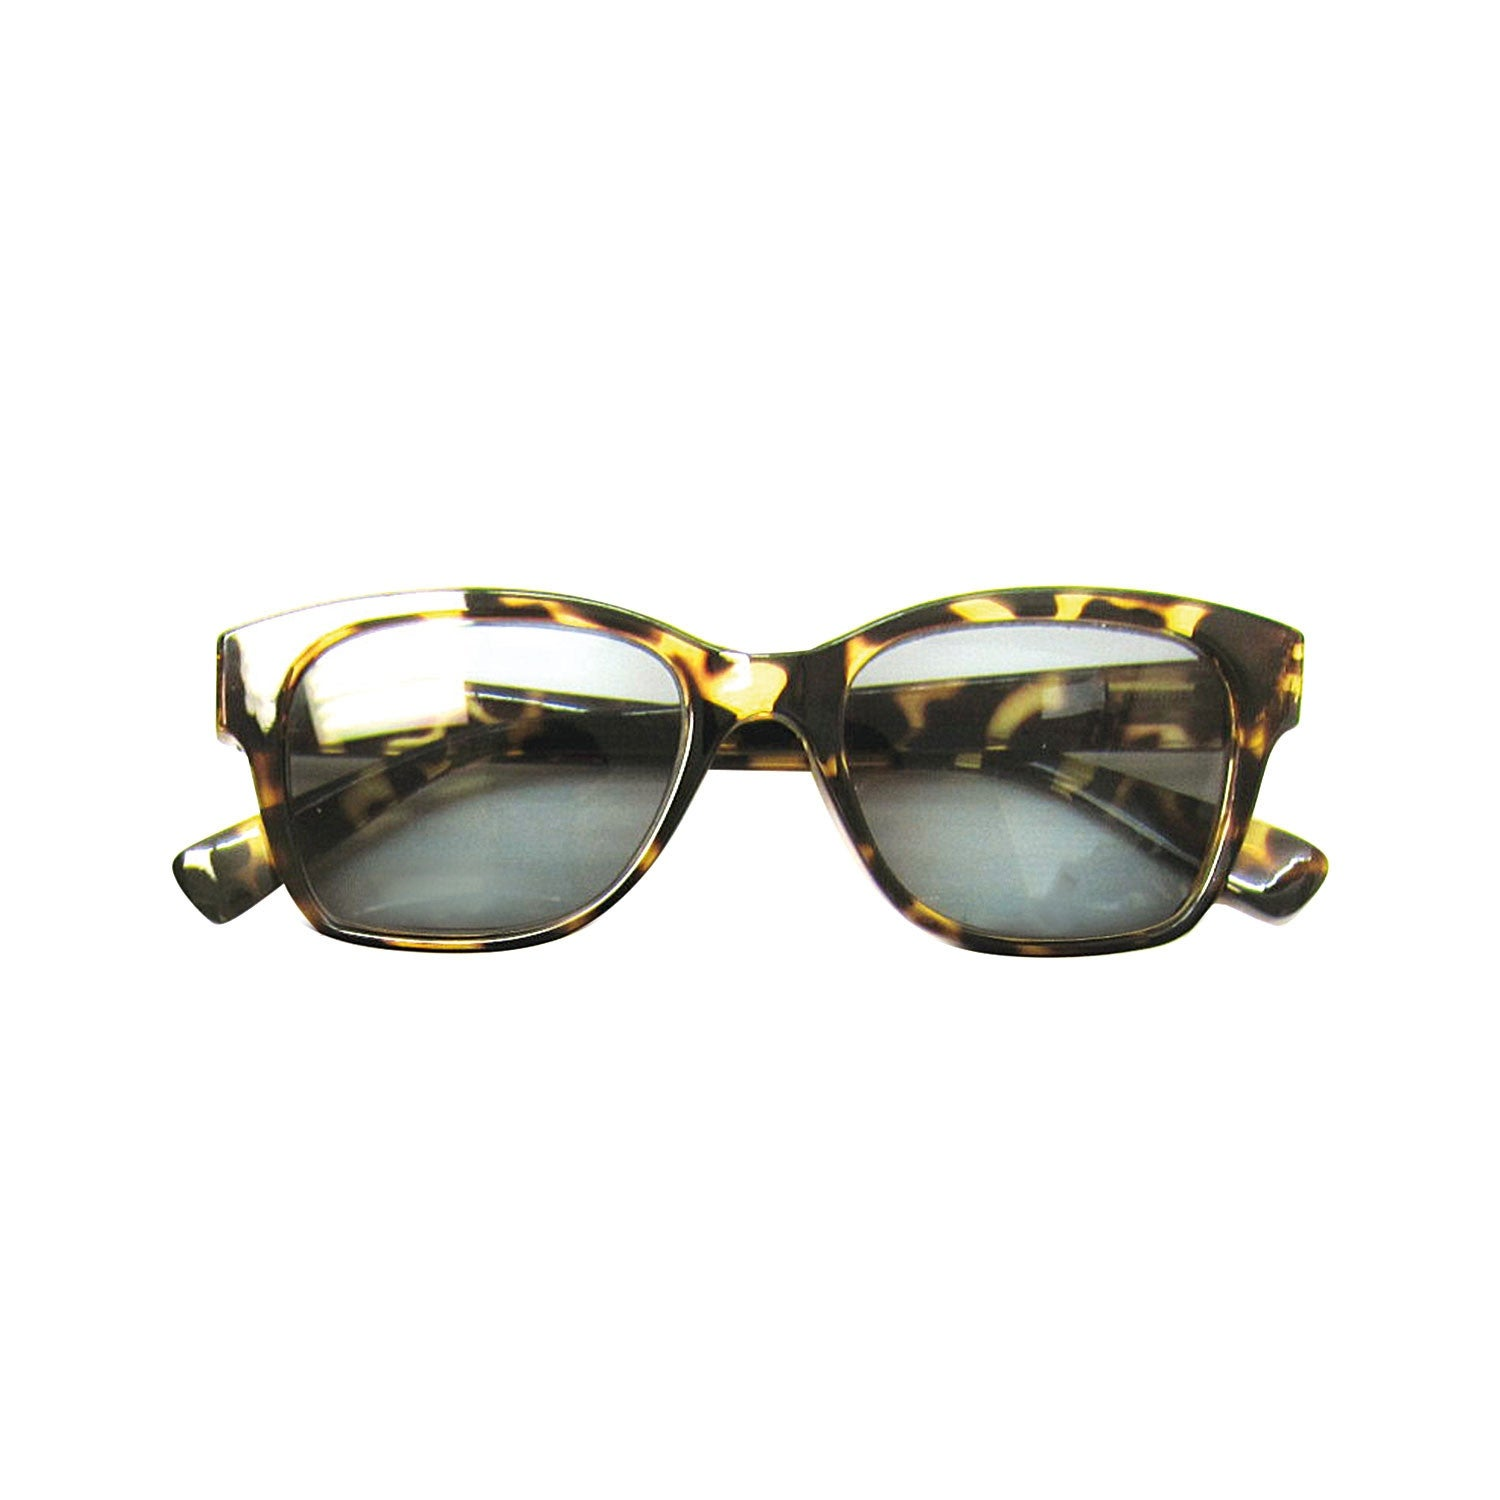 af8ece190f02a Shop Cougar Sunglasses Women s Dramatic Tortoise Shell Sunreaders - UVA UVB  Protection Outdoor Reading Glasses - On Sale - Free Shipping On Orders Over   45 ...